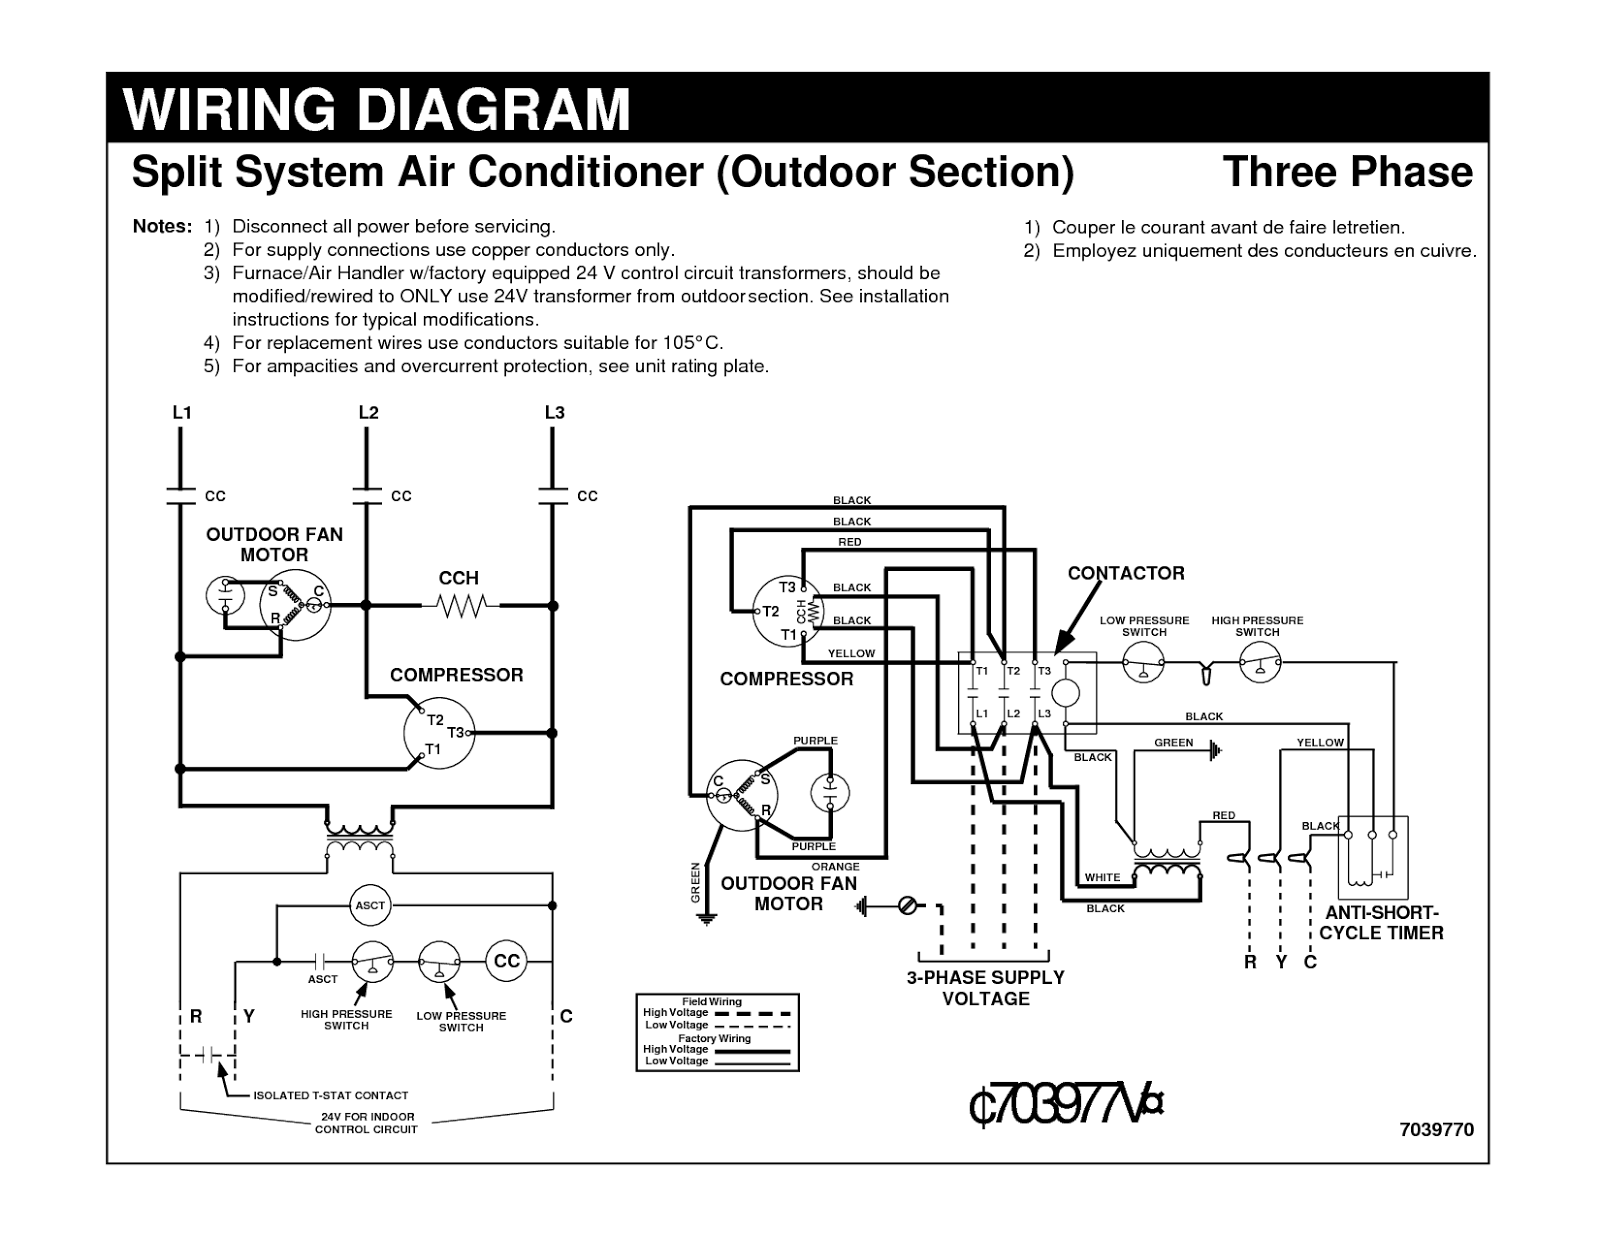 electrical wiring diagrams for air conditioning systems part one  : hvac wiring diagrams - findchart.co